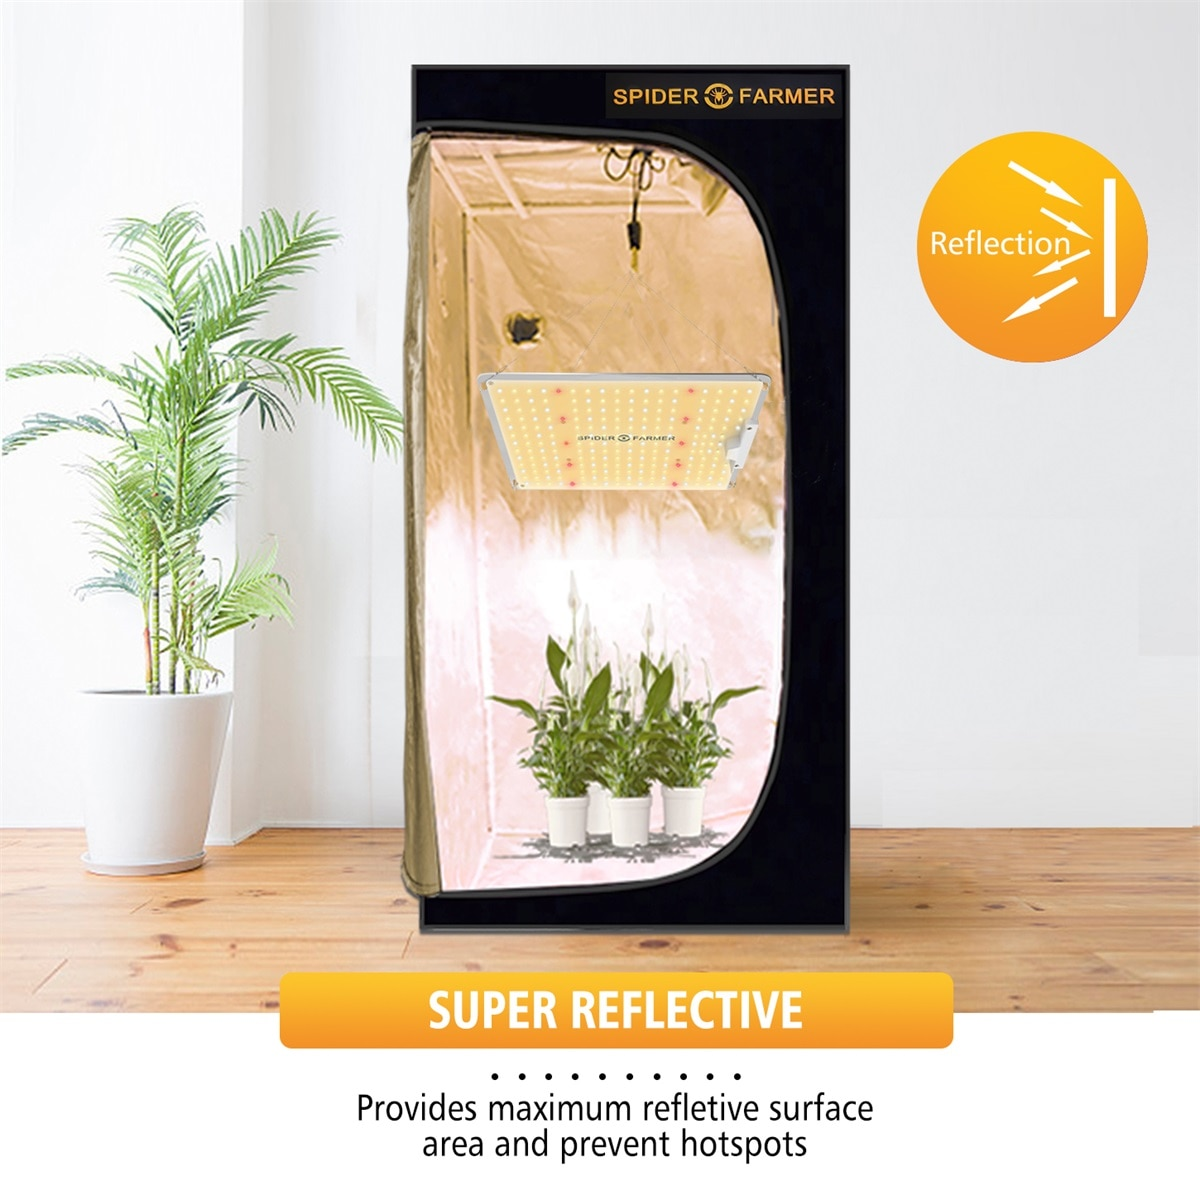 Spider Farmer 60x60 CM Grow Tent Indoor Home Hydroponic Box 100% Reflective Aluminum Oxford Cloth Greenhouse For Growing Lamps enlarge